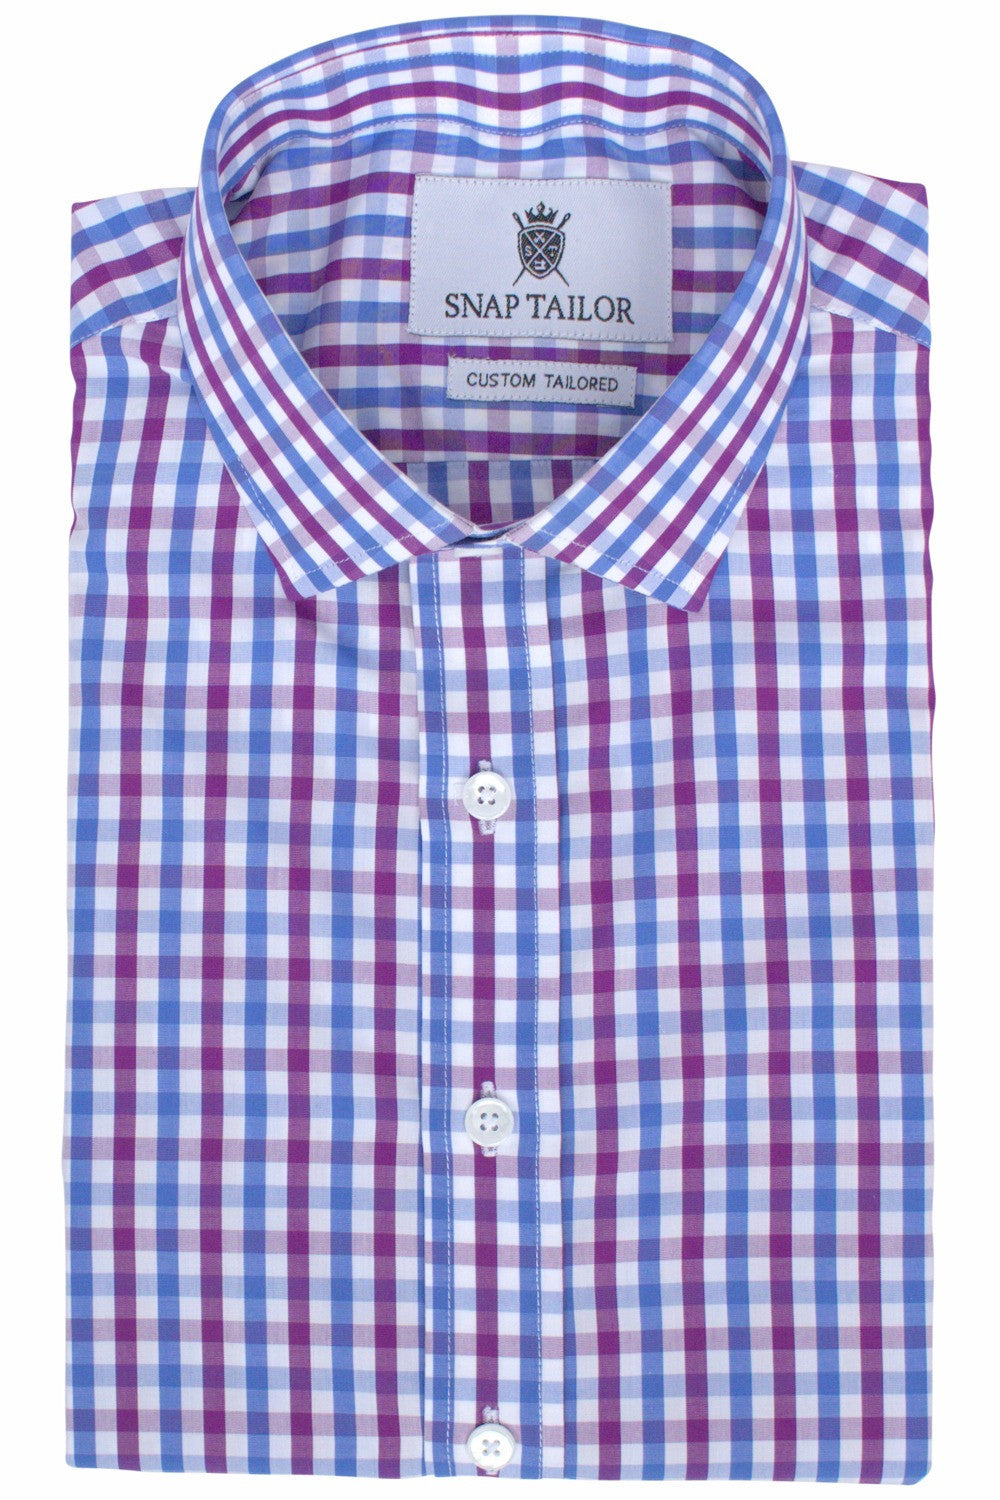 Photo of the Multicolor Gingham Casual Shirt in Eggplant / Sky Blue